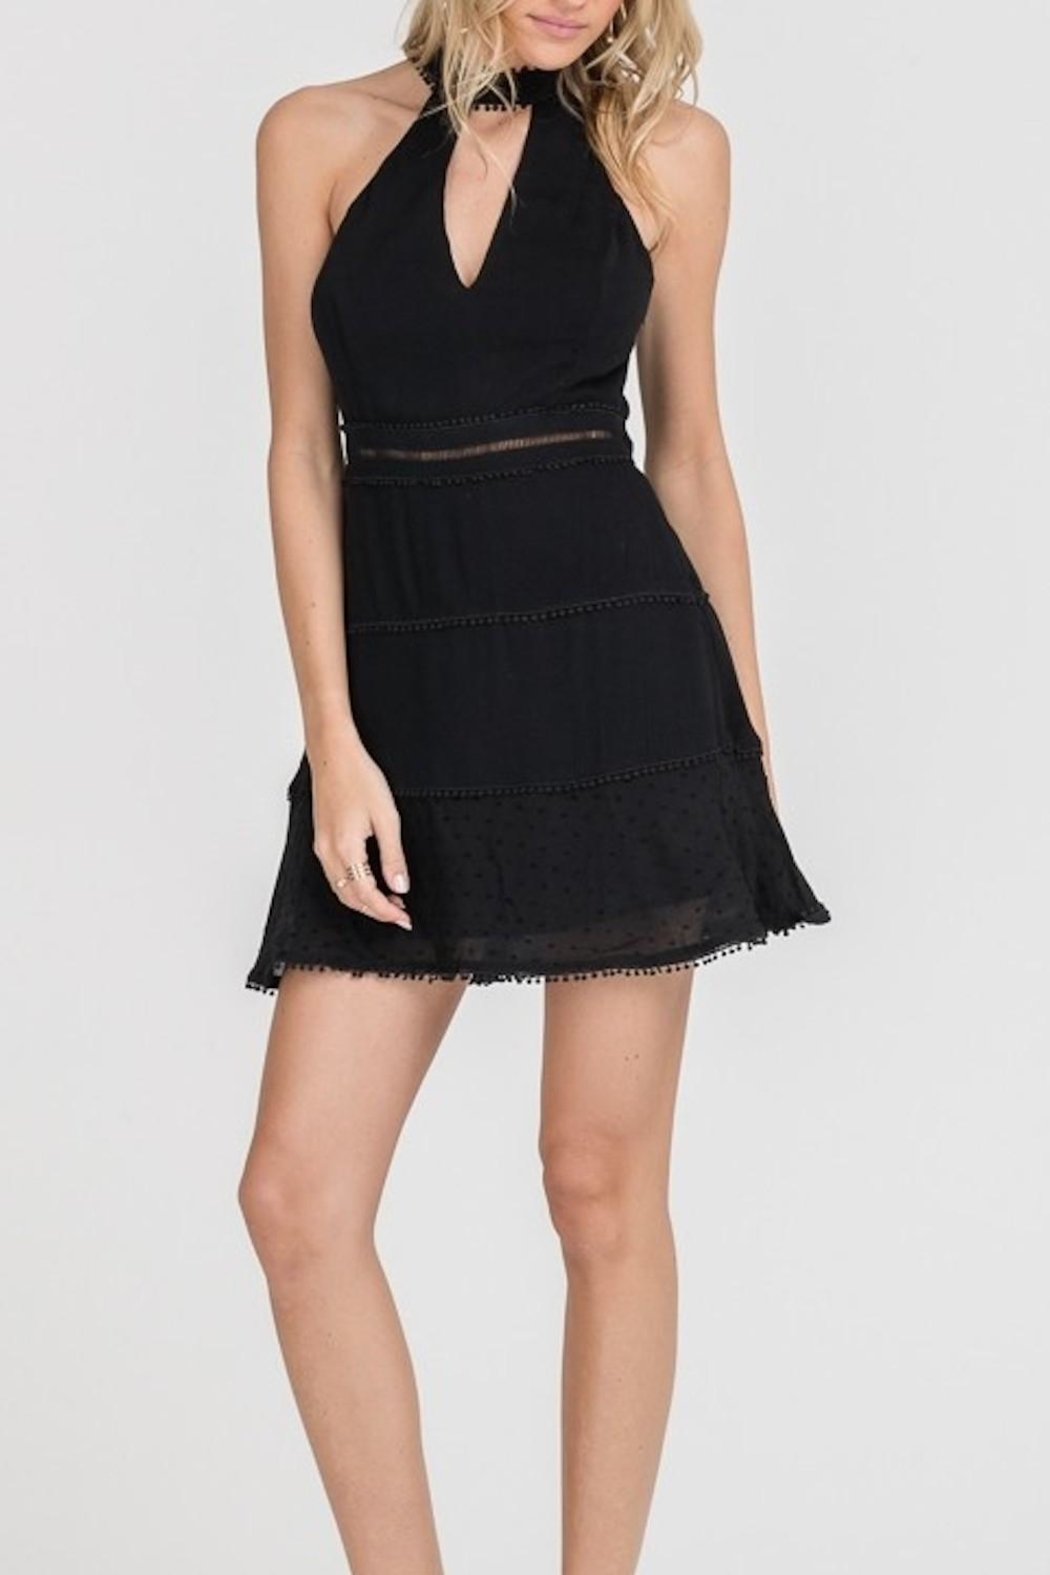 Lush Clothing  High-Neck Mini Dress - Front Full Image